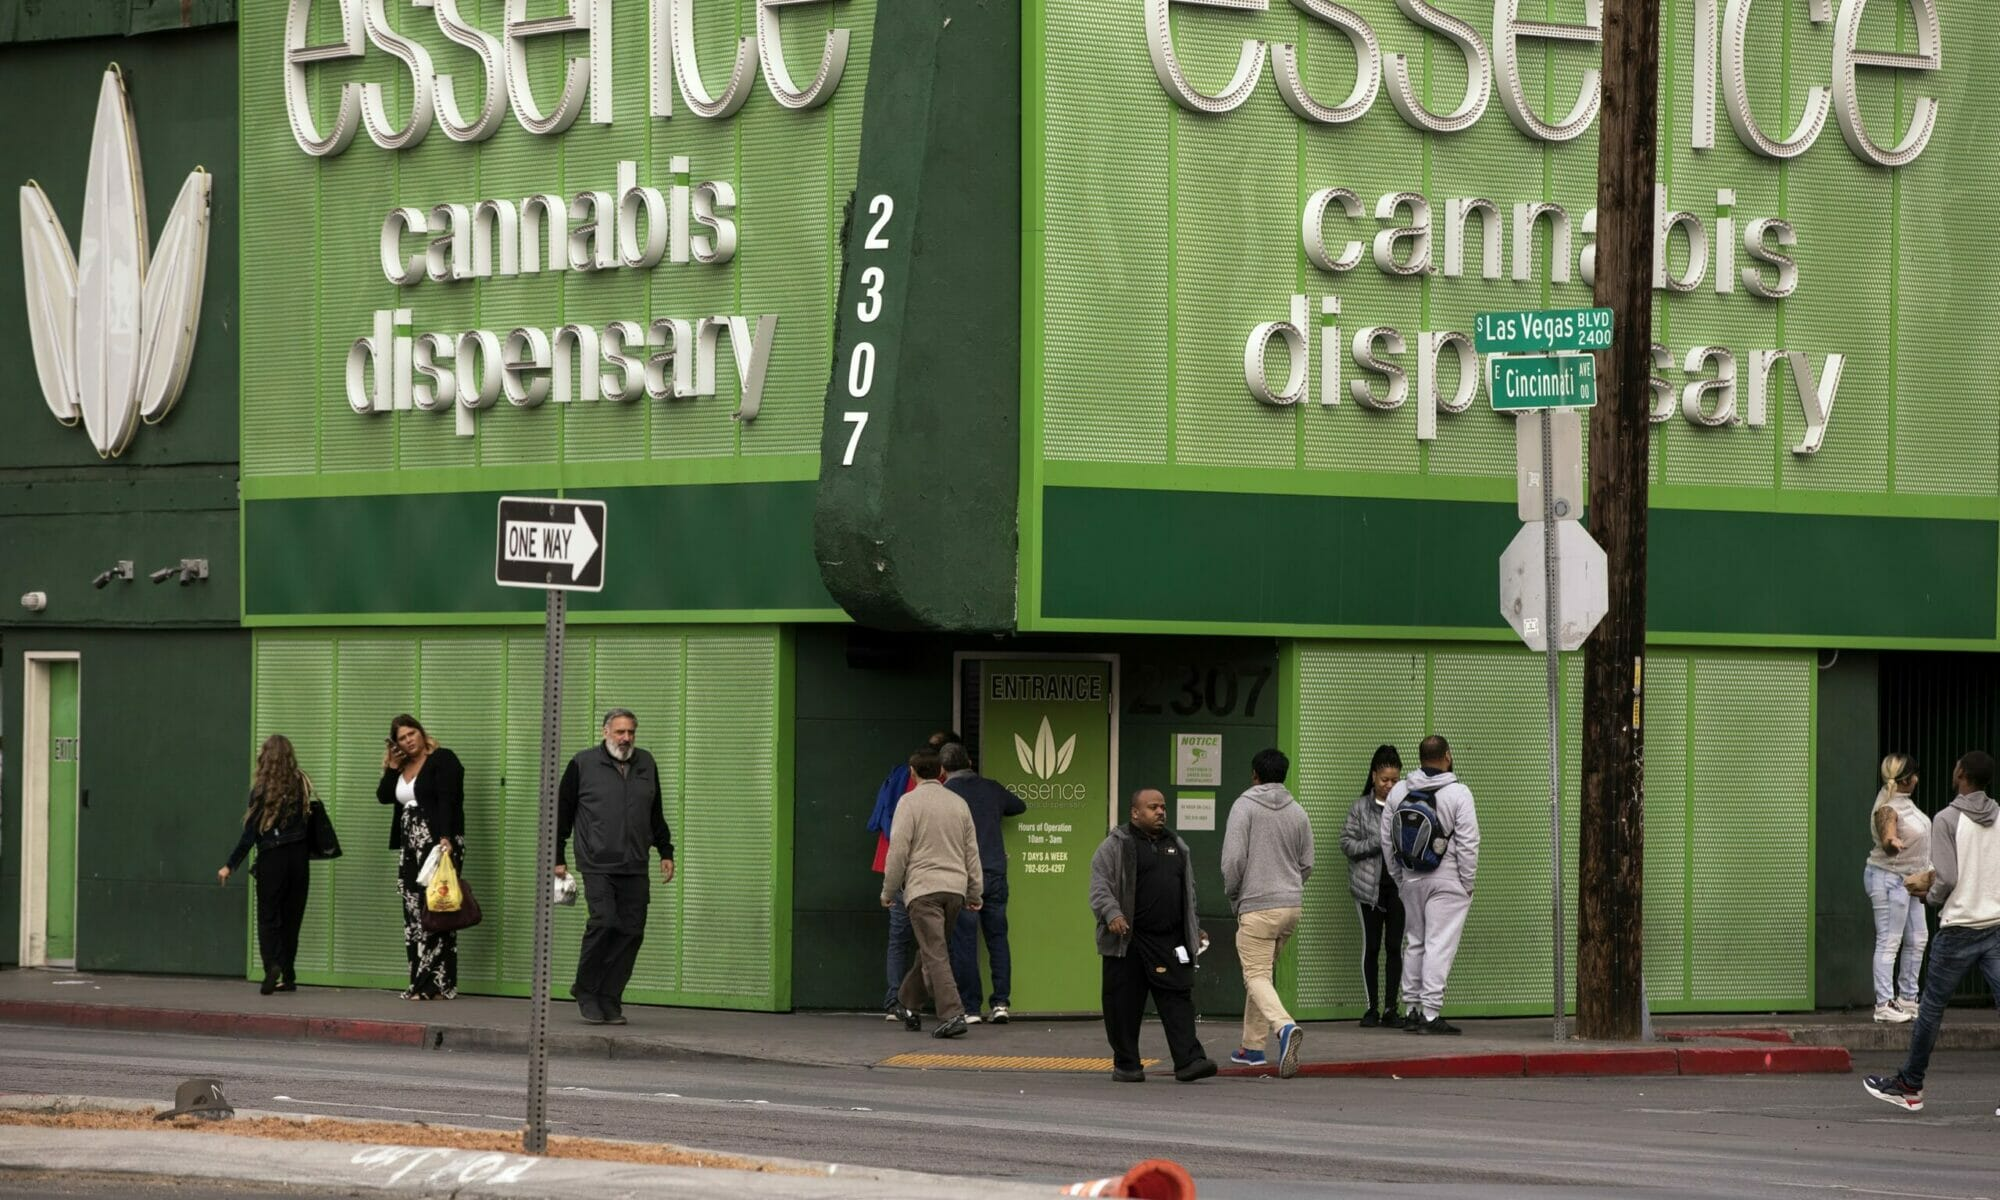 Group of pedestrians outside Essence Cannabis Dispensary